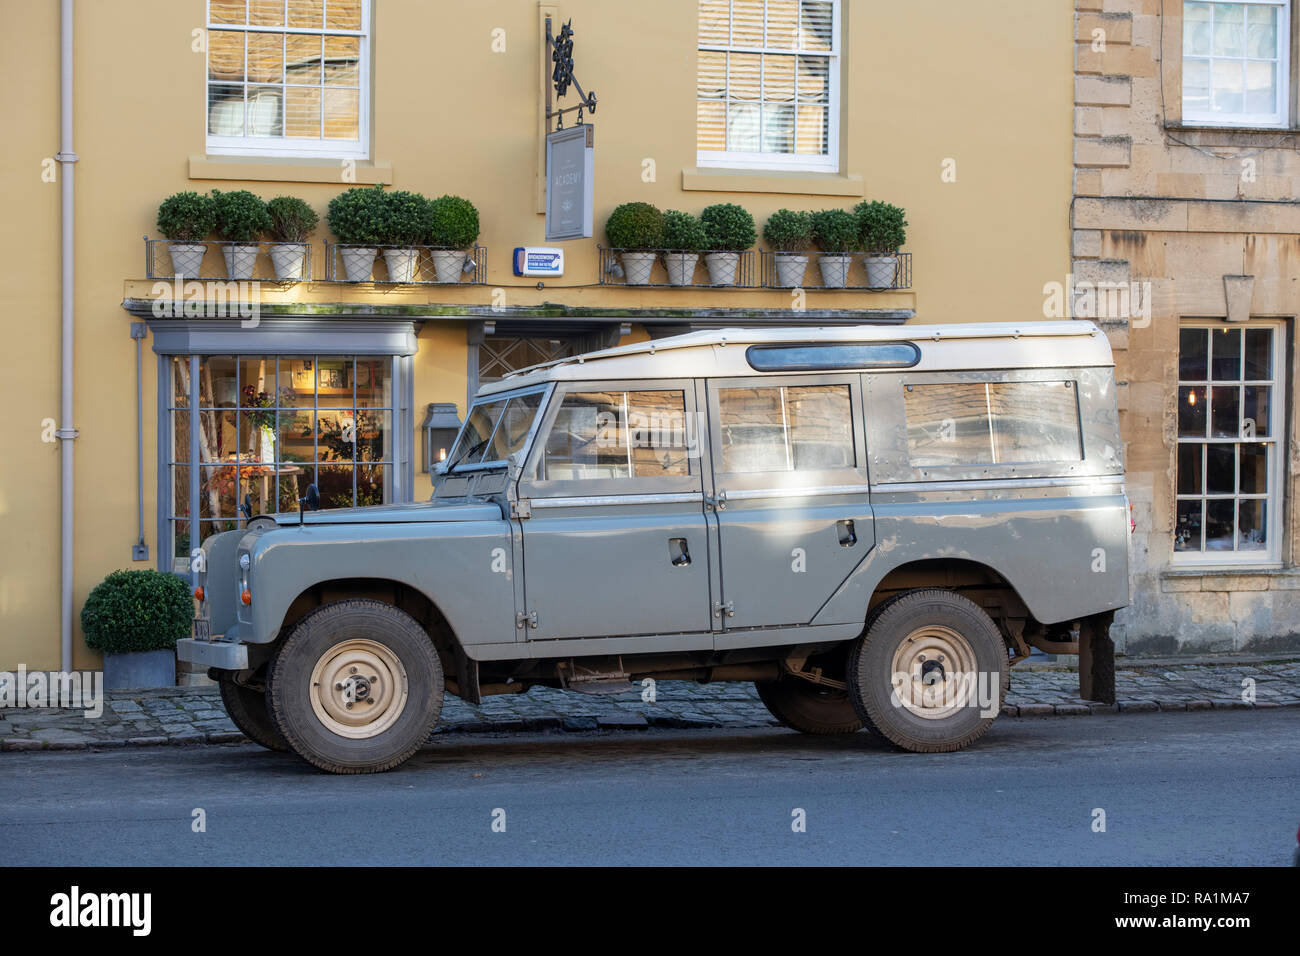 1970 Land Rover outside a shop in Chipping Campden, Cotswolds, Gloucestershire, UK Stock Photo